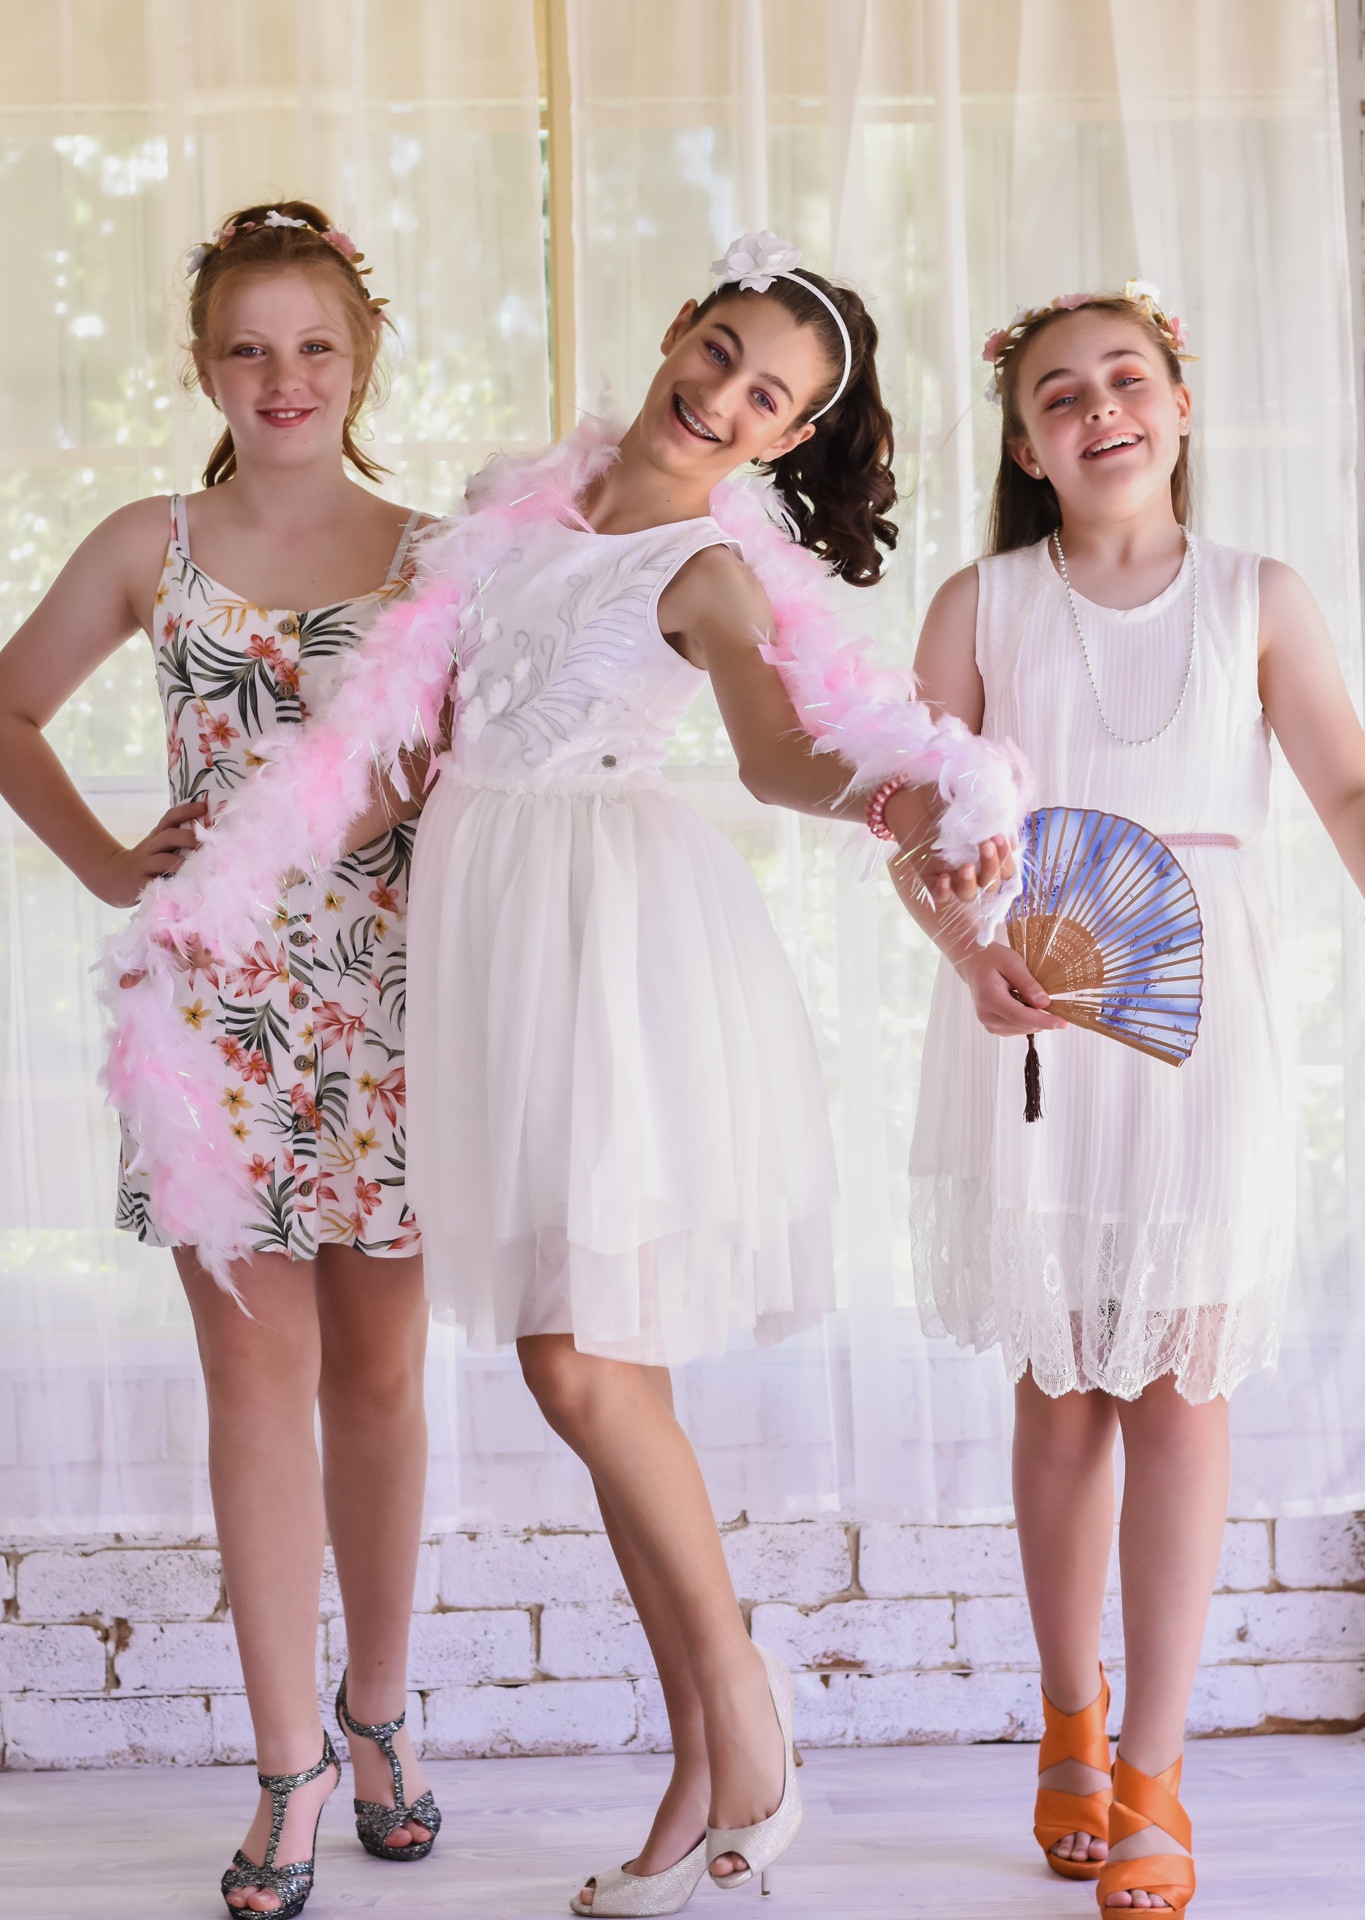 Photoshoot Parties for Teens and Tweens